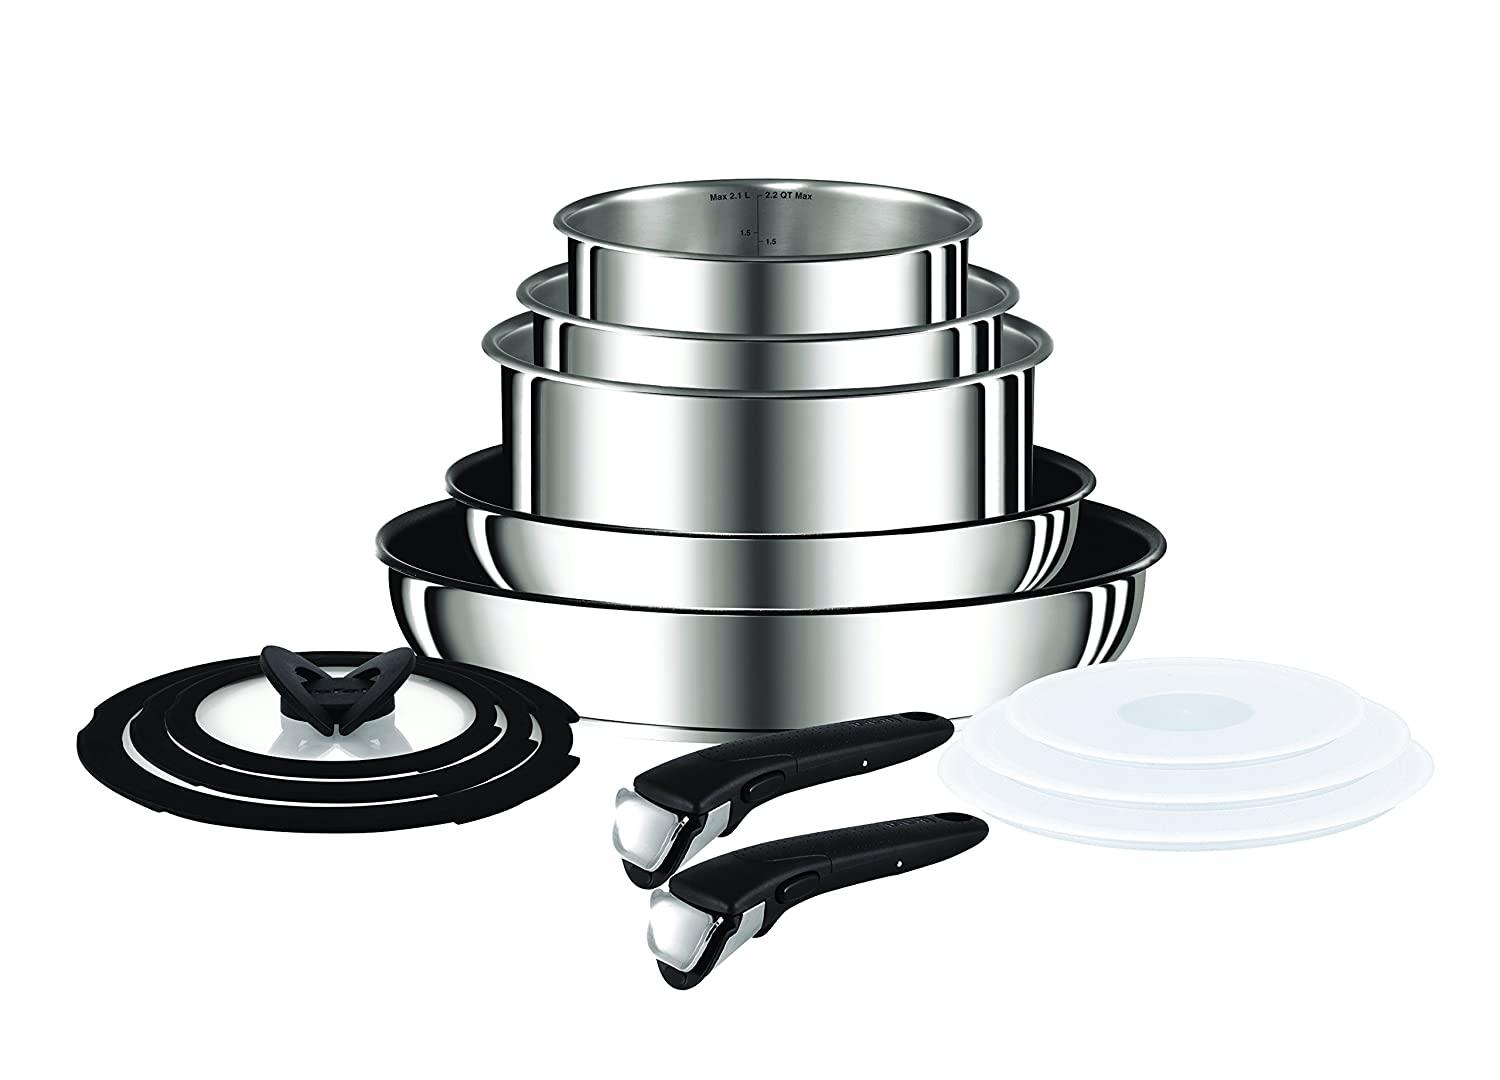 Tefal Ingenio Pots And Pans Set Stainless Steel 13 Piece